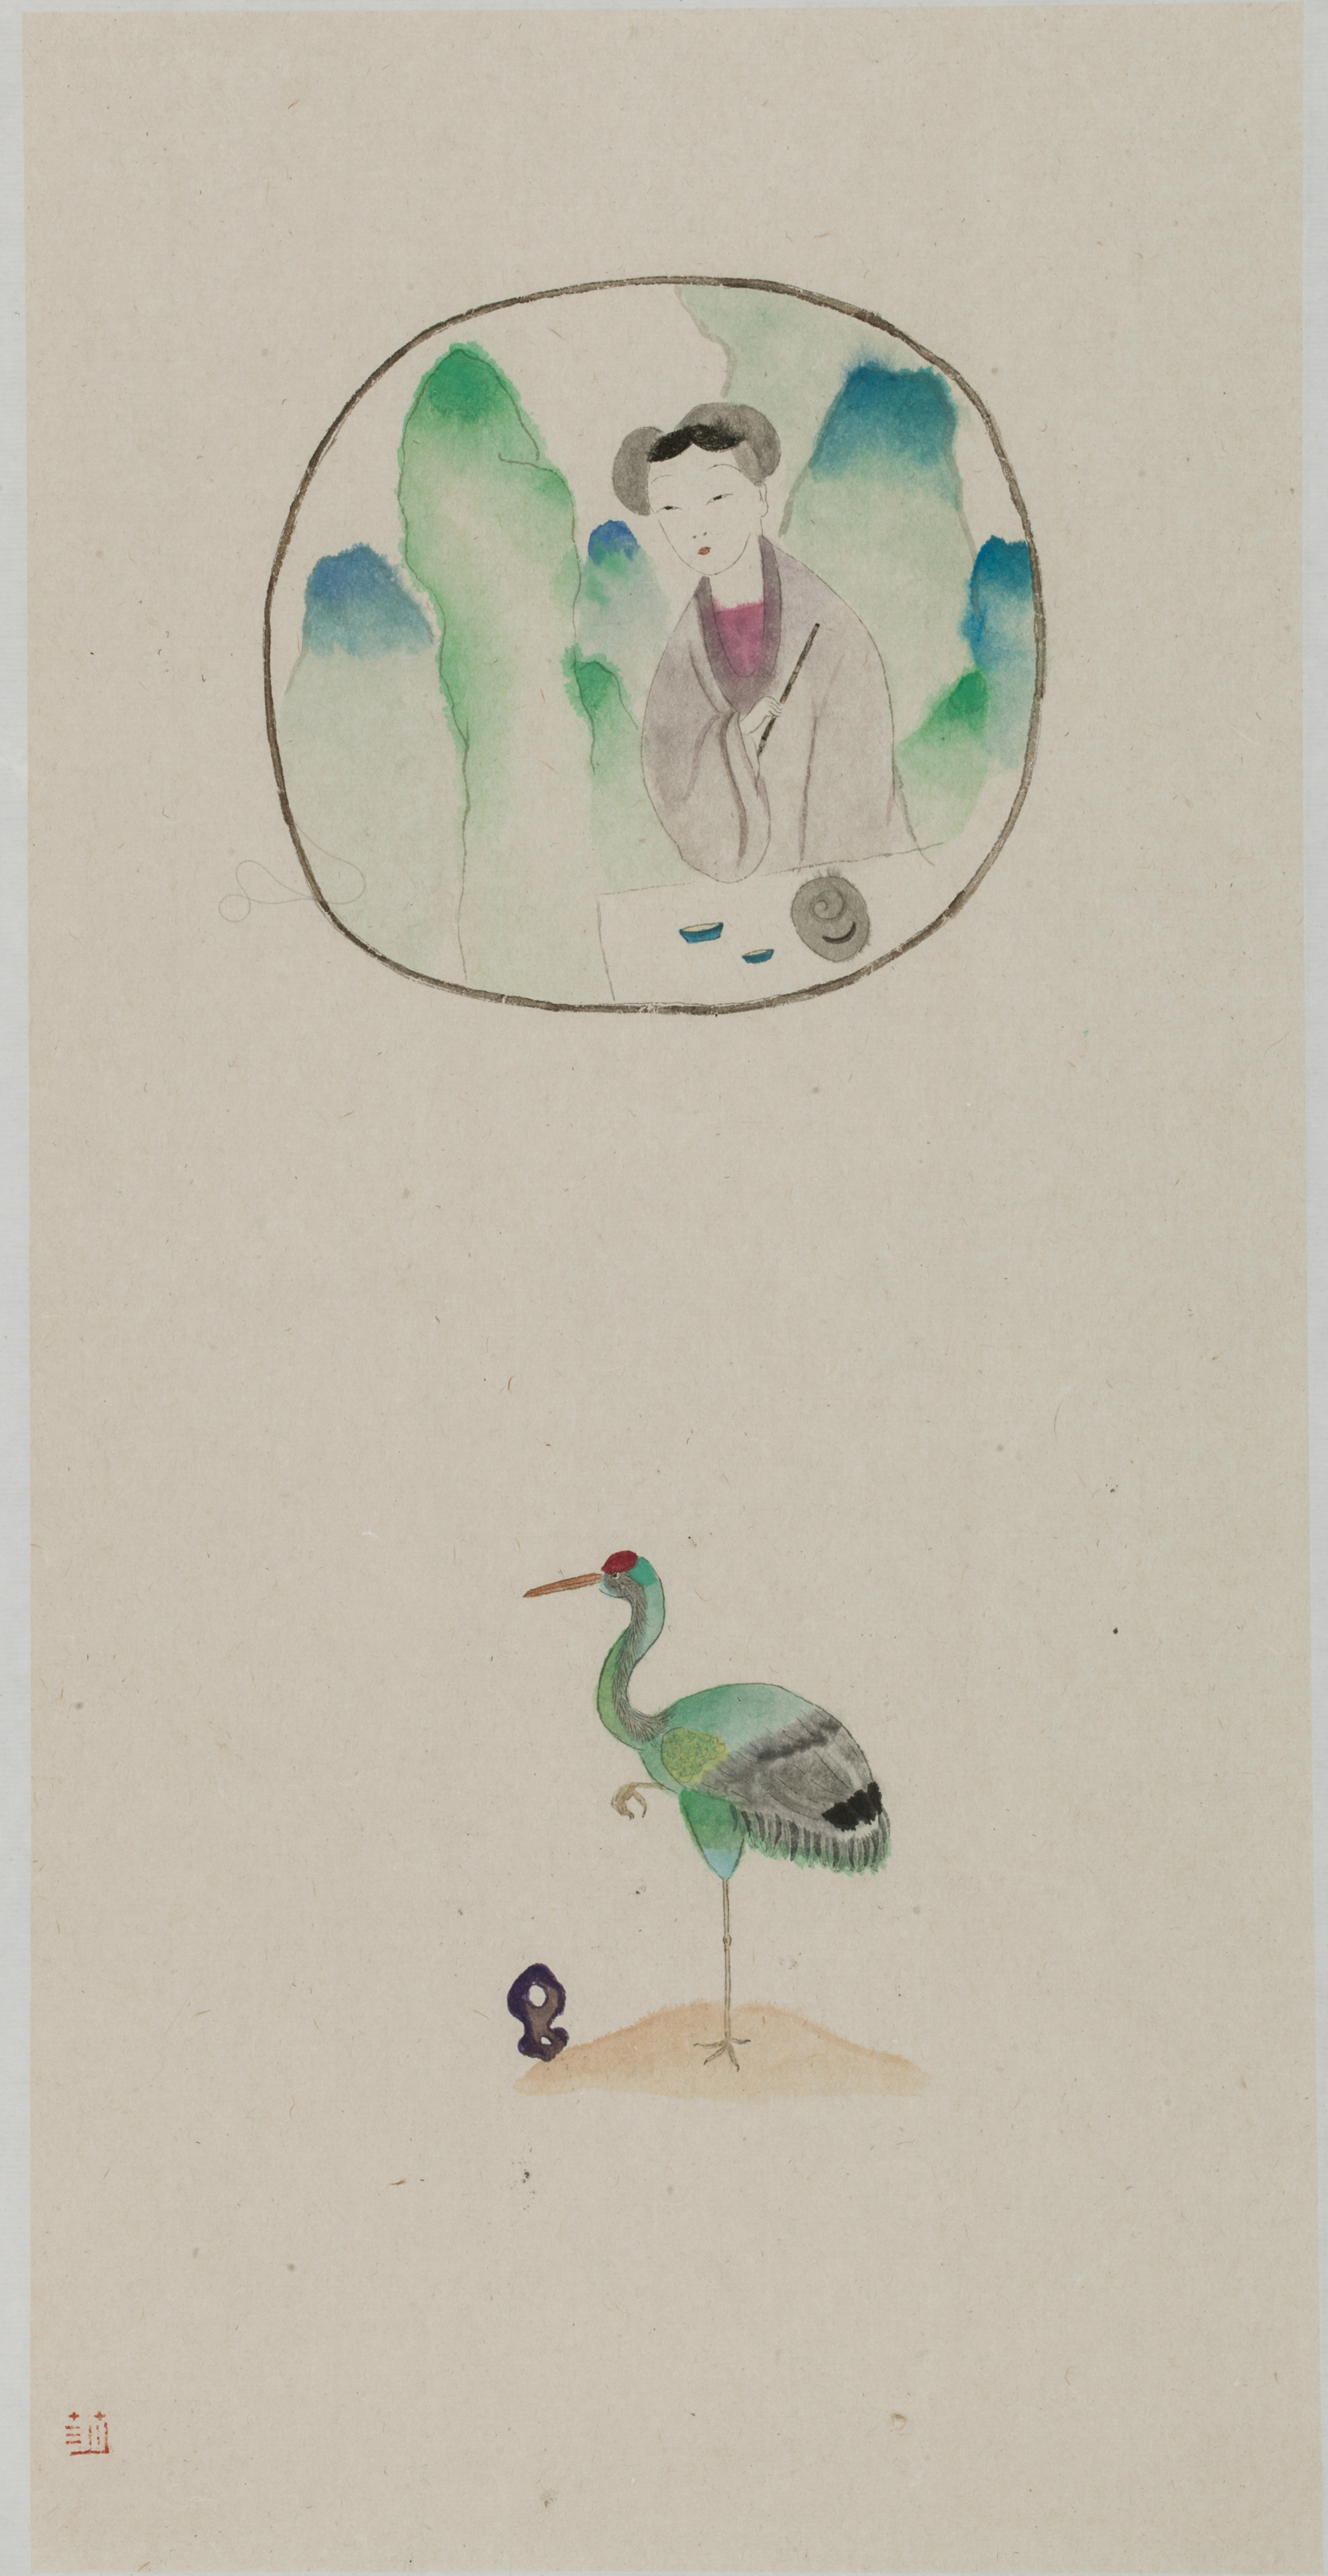 Wang Mengsha 王濛莎, Window Lattice 窗棂, 2013, Chinese ink and color on rice paper 纸本水墨设色, 68 x 35 cm